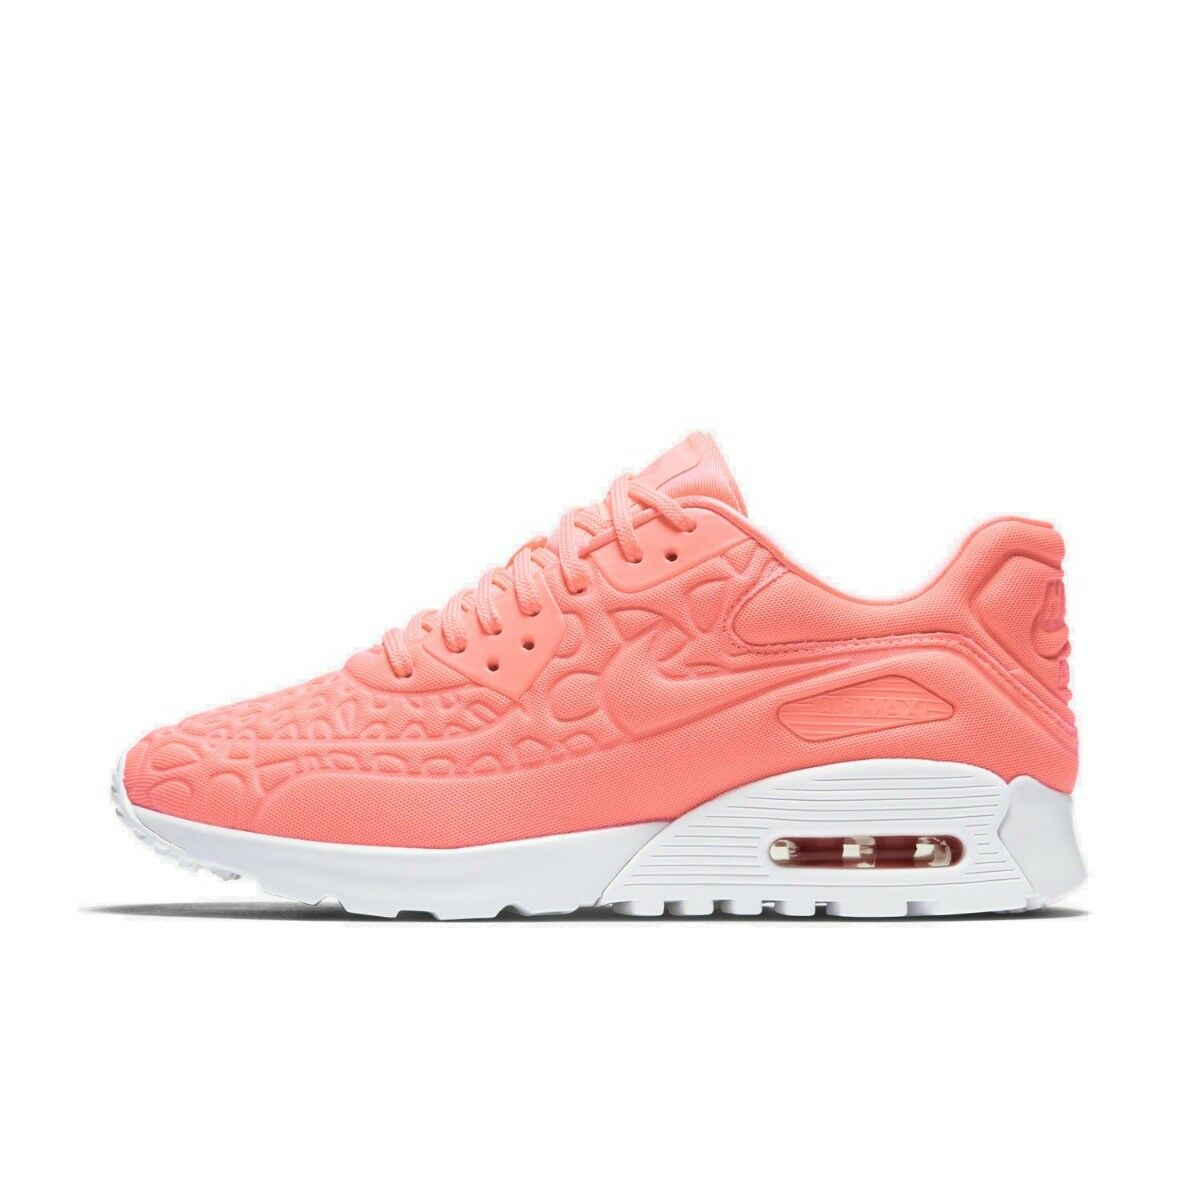 Nike Air Max 90 Ultra Plush femmes Trainer